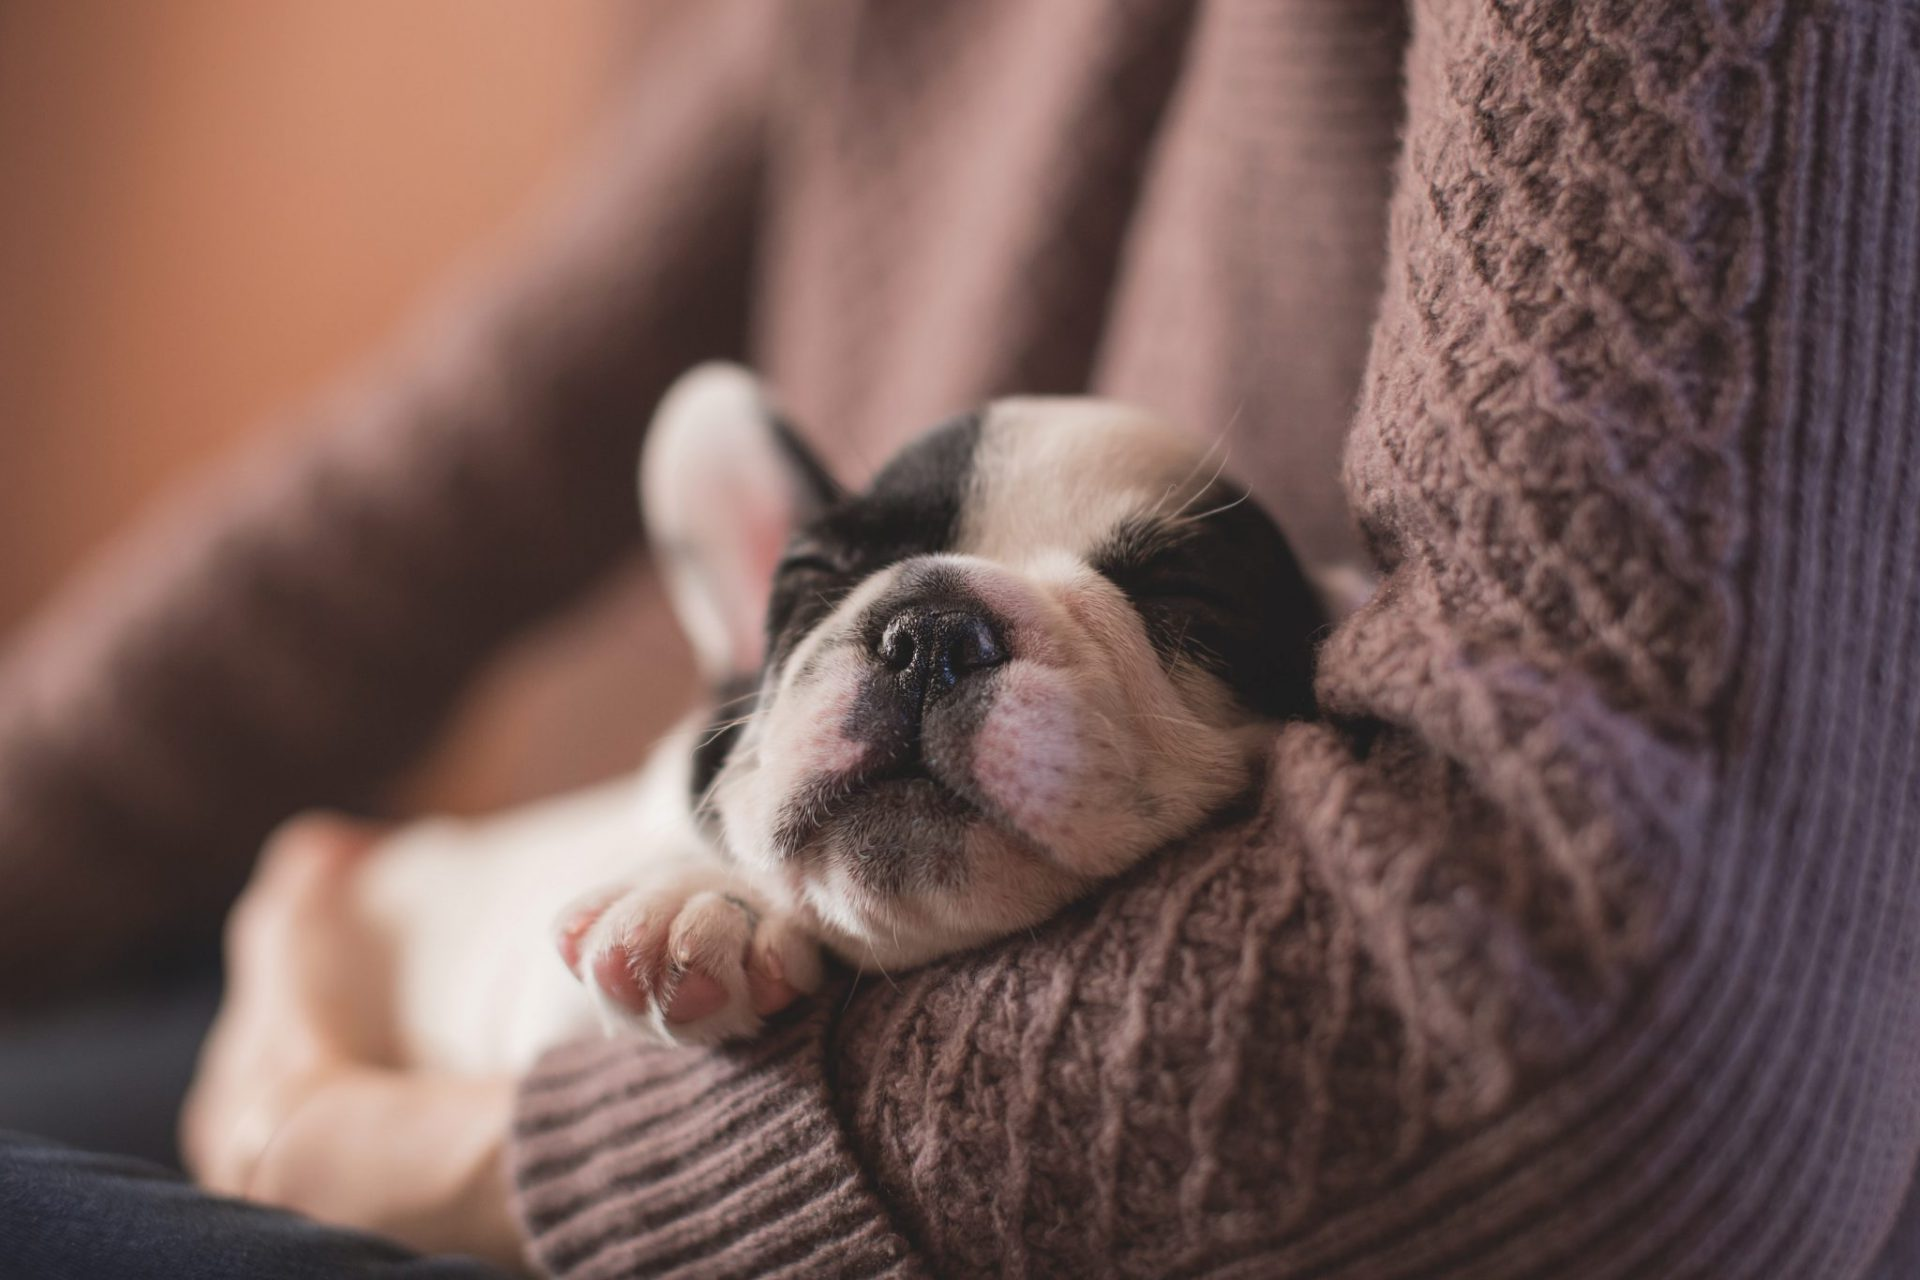 Is pet insurance worth it is a question many pet owners ask